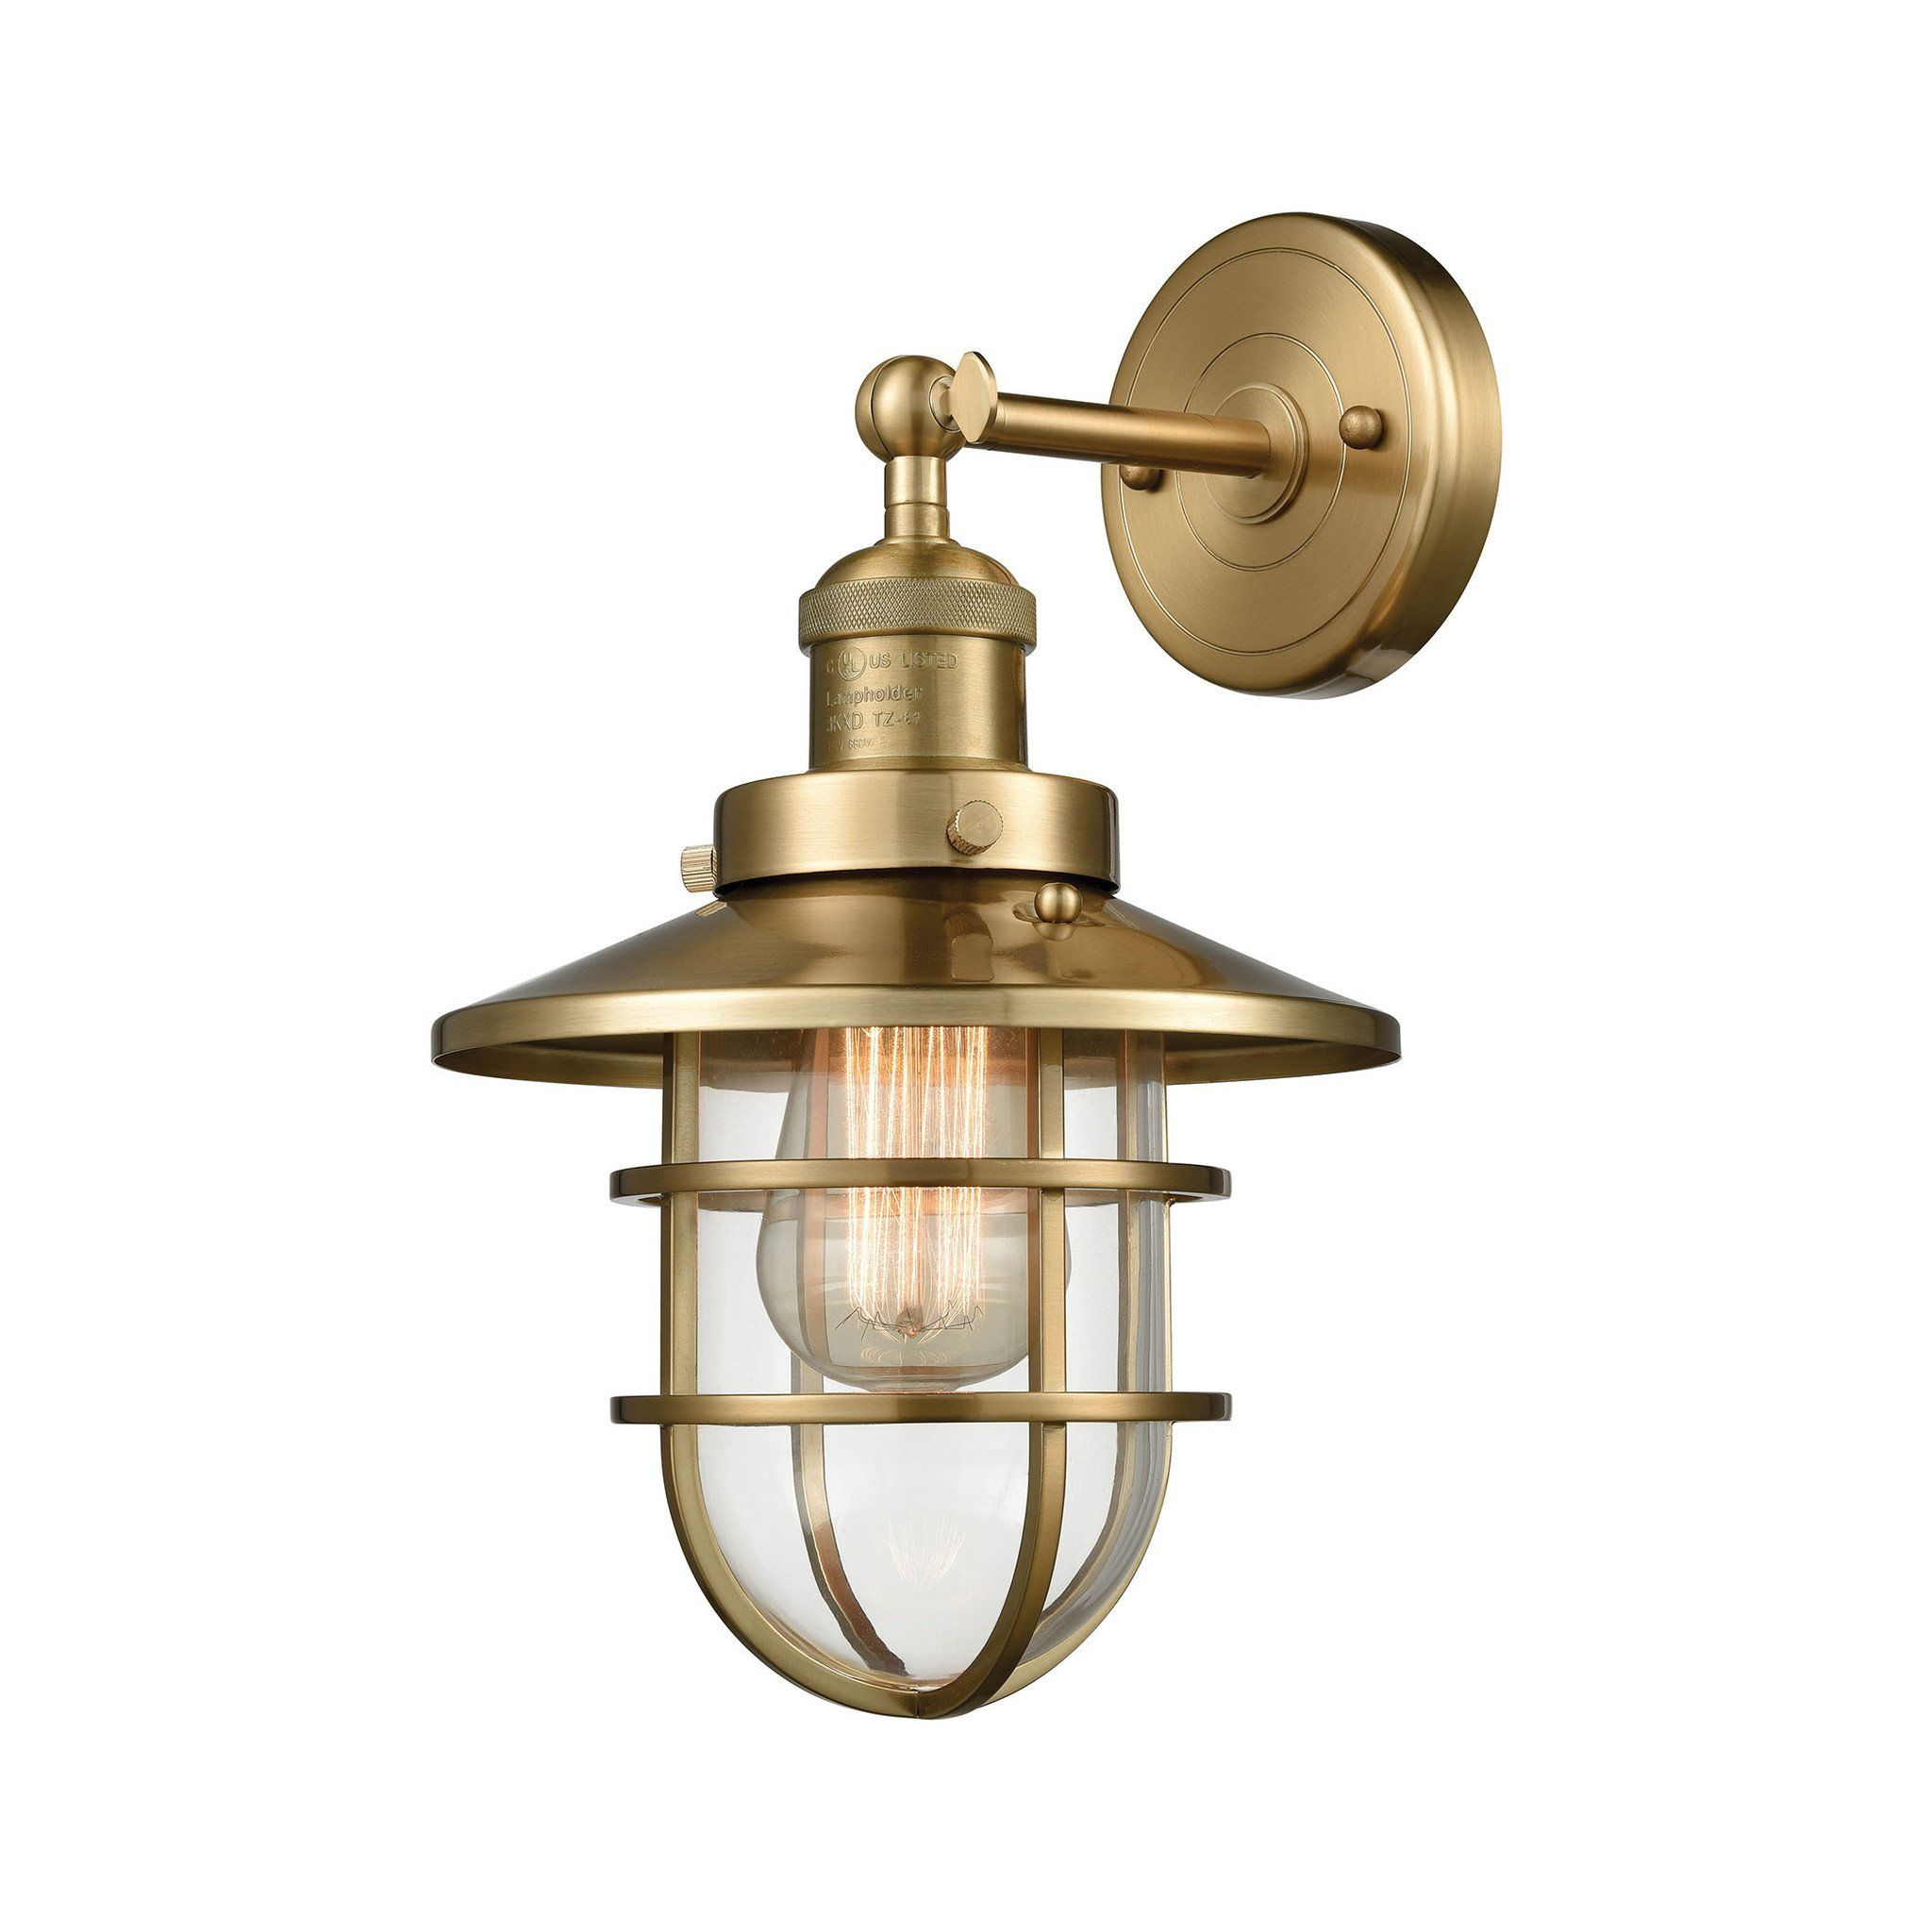 Elk Lighting Seaport Wall Sconce With Metal Shade In Satin Br 66386 1